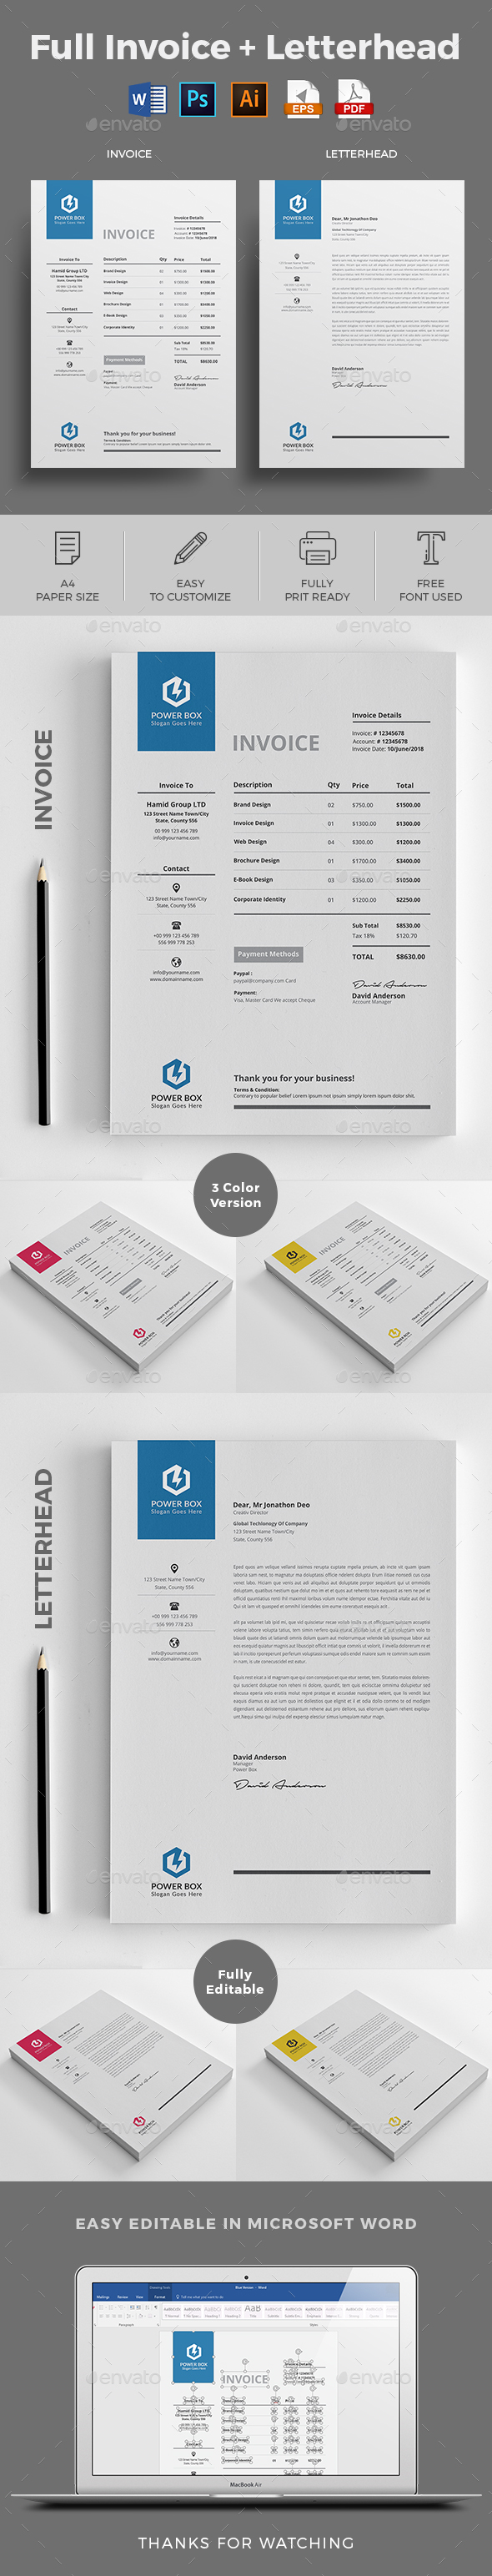 Invoice with Letterhead - Proposals & Invoices Stationery